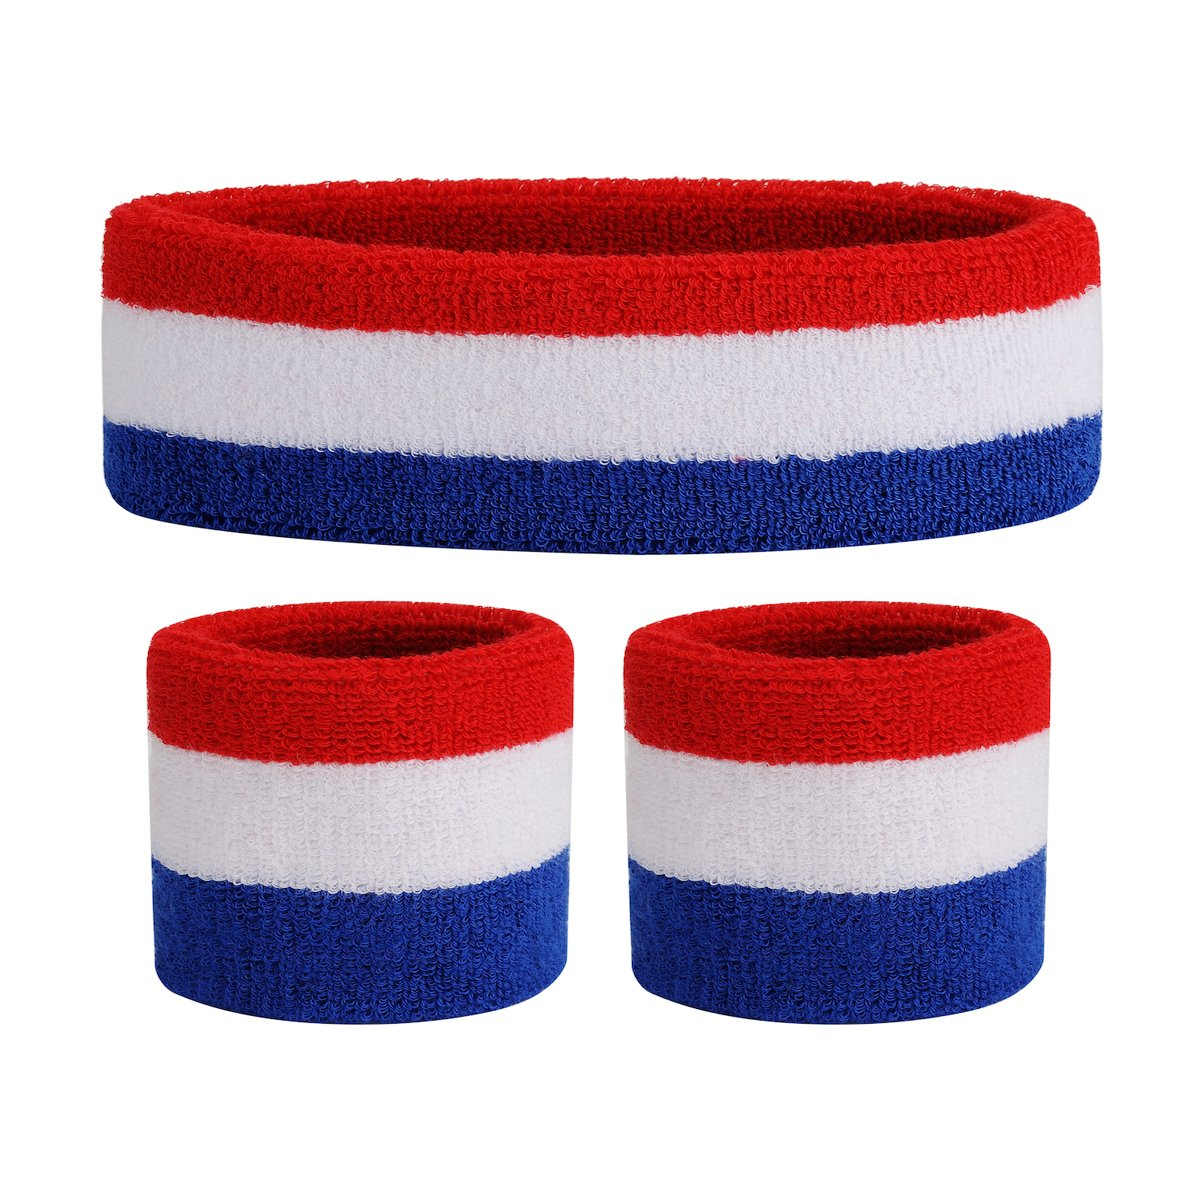 ONUPGO Kids Head Sweatband Wristband Set - Athletic Cotton Terry Cloth Headbands for Sports (1 Headband + 2 Wristbands)